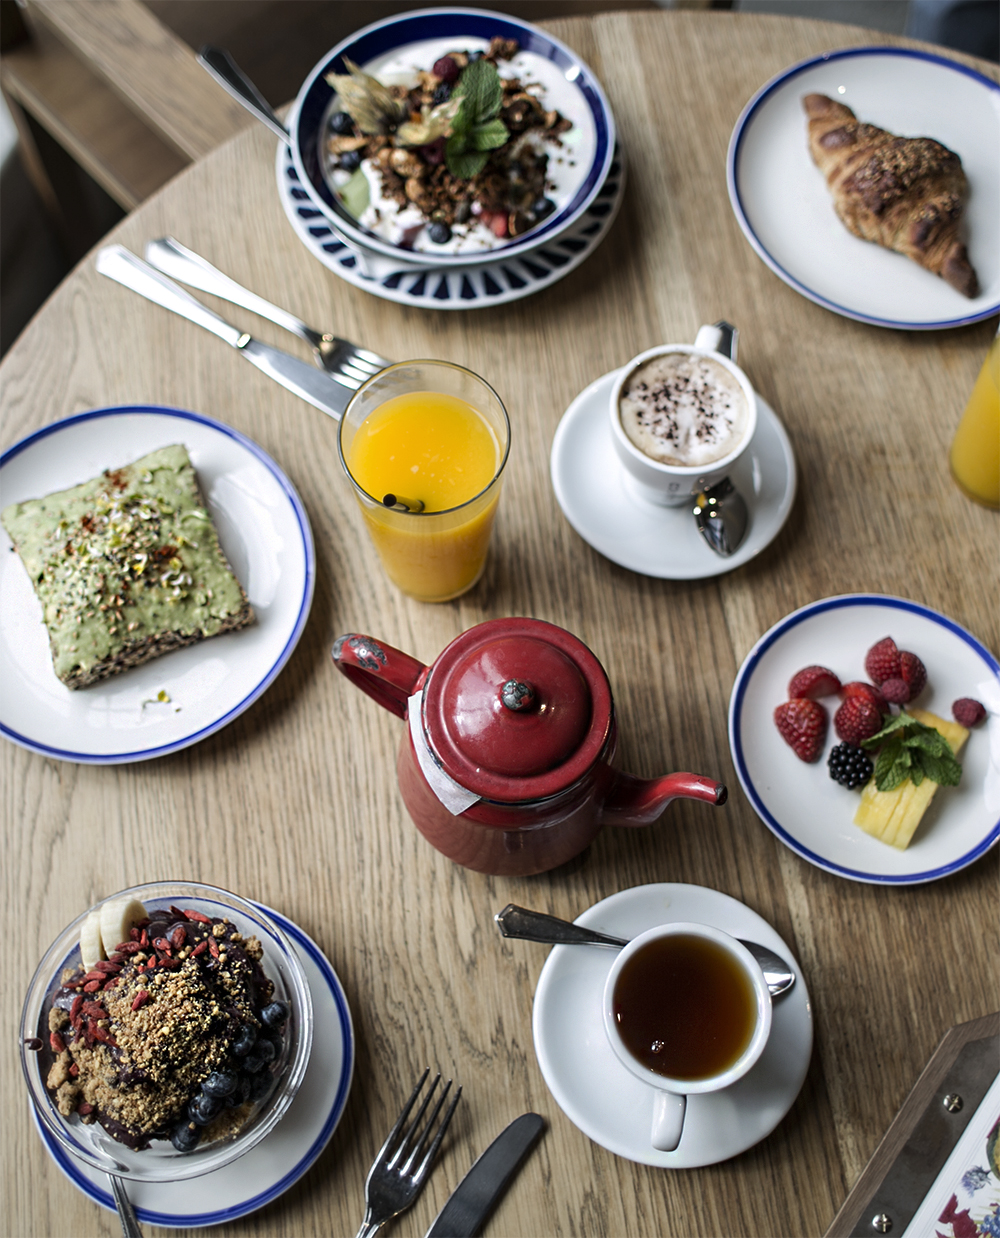 sania claus demina barcelona travel guide tips food brunch breakfast flax and kale_0